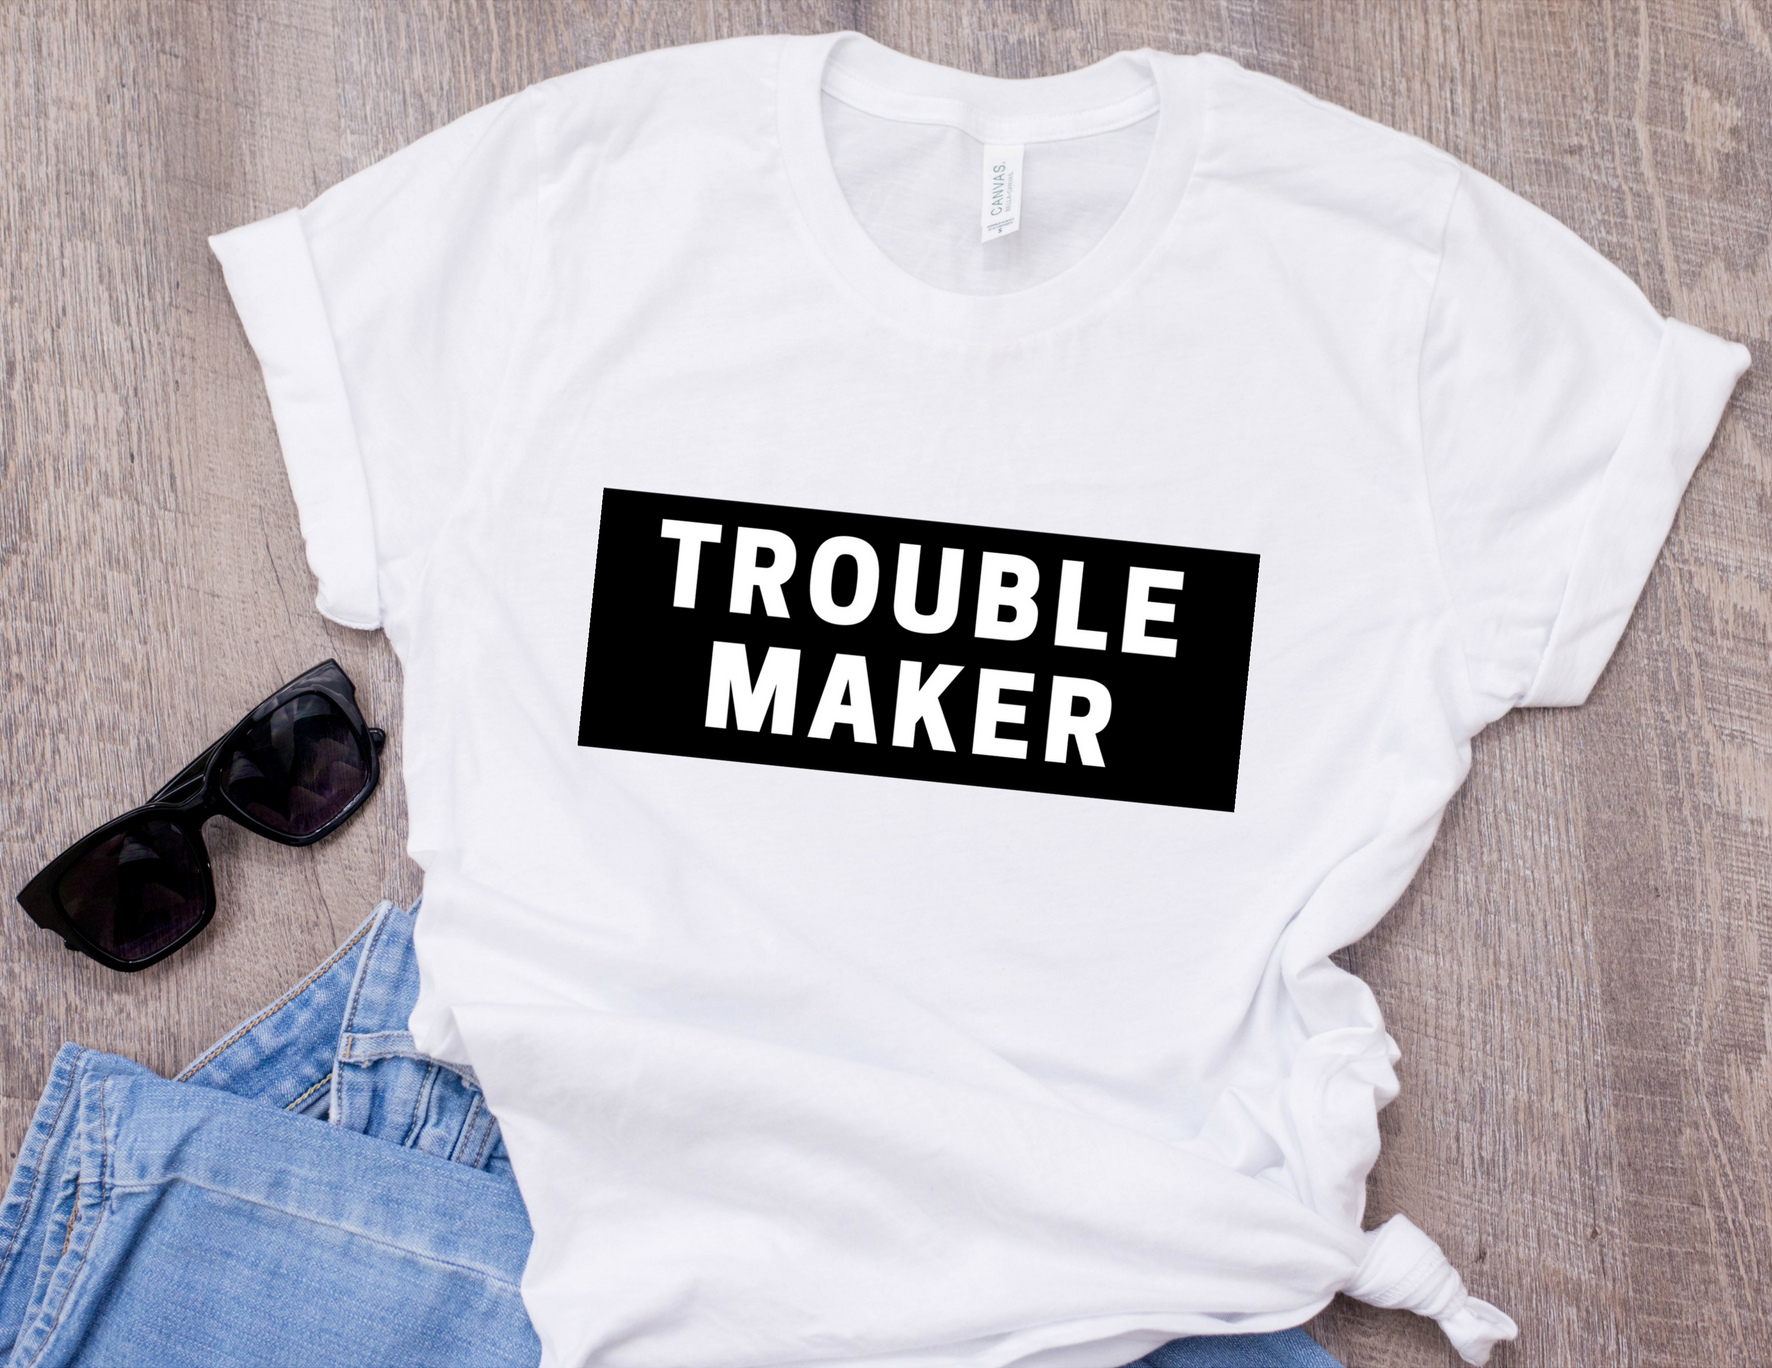 Trouble Maker T-Shirt f1feda391530